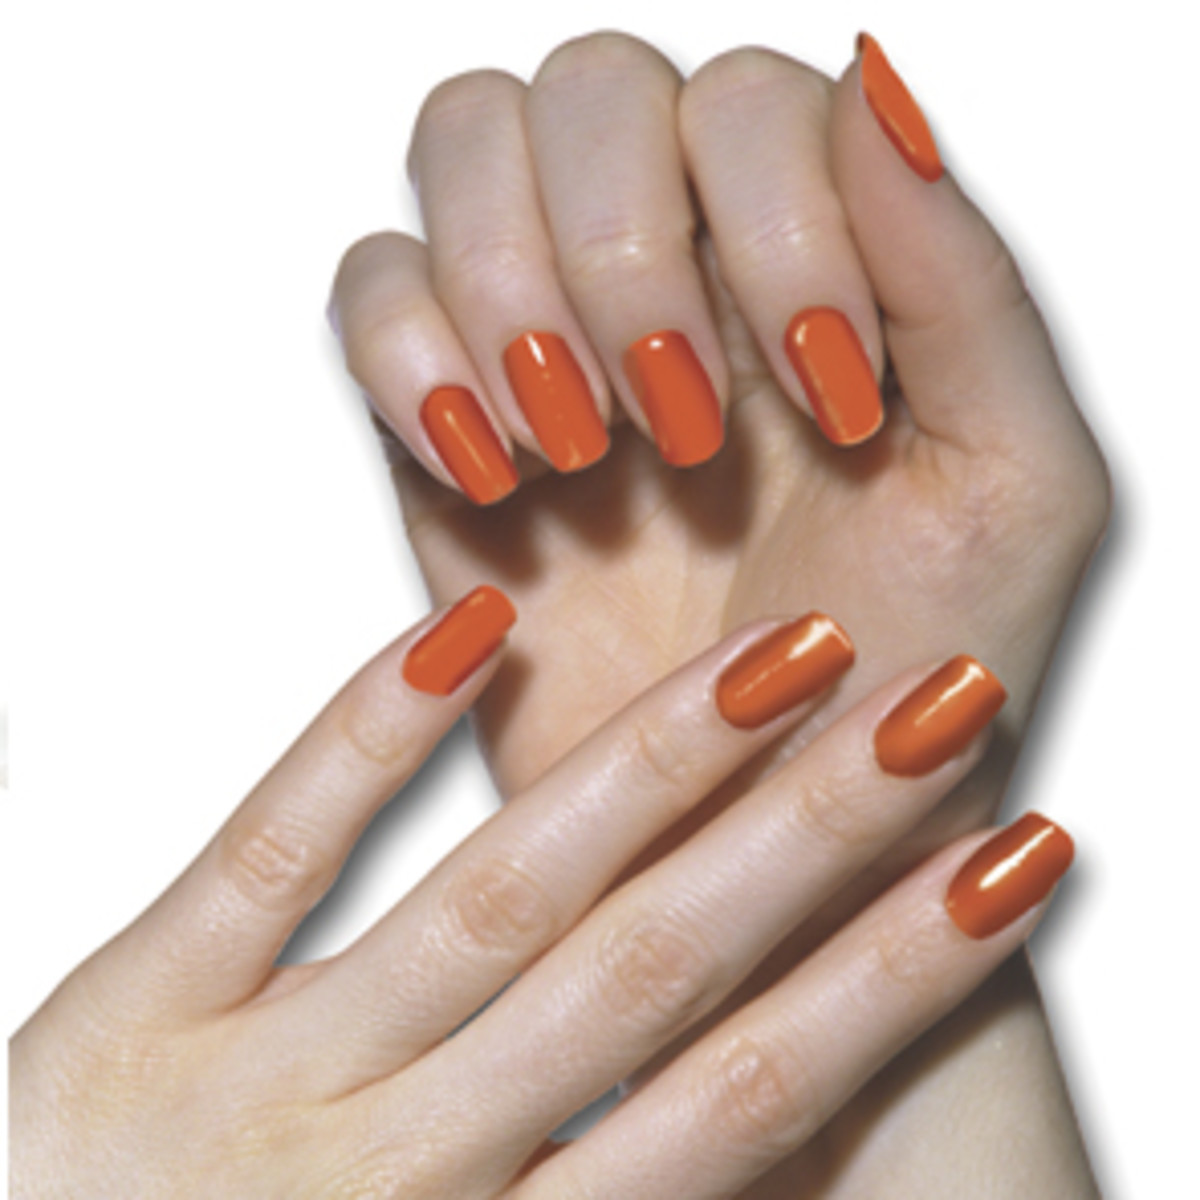 What does your nail polish color say about you? (image source: www.stargazer-products.com)